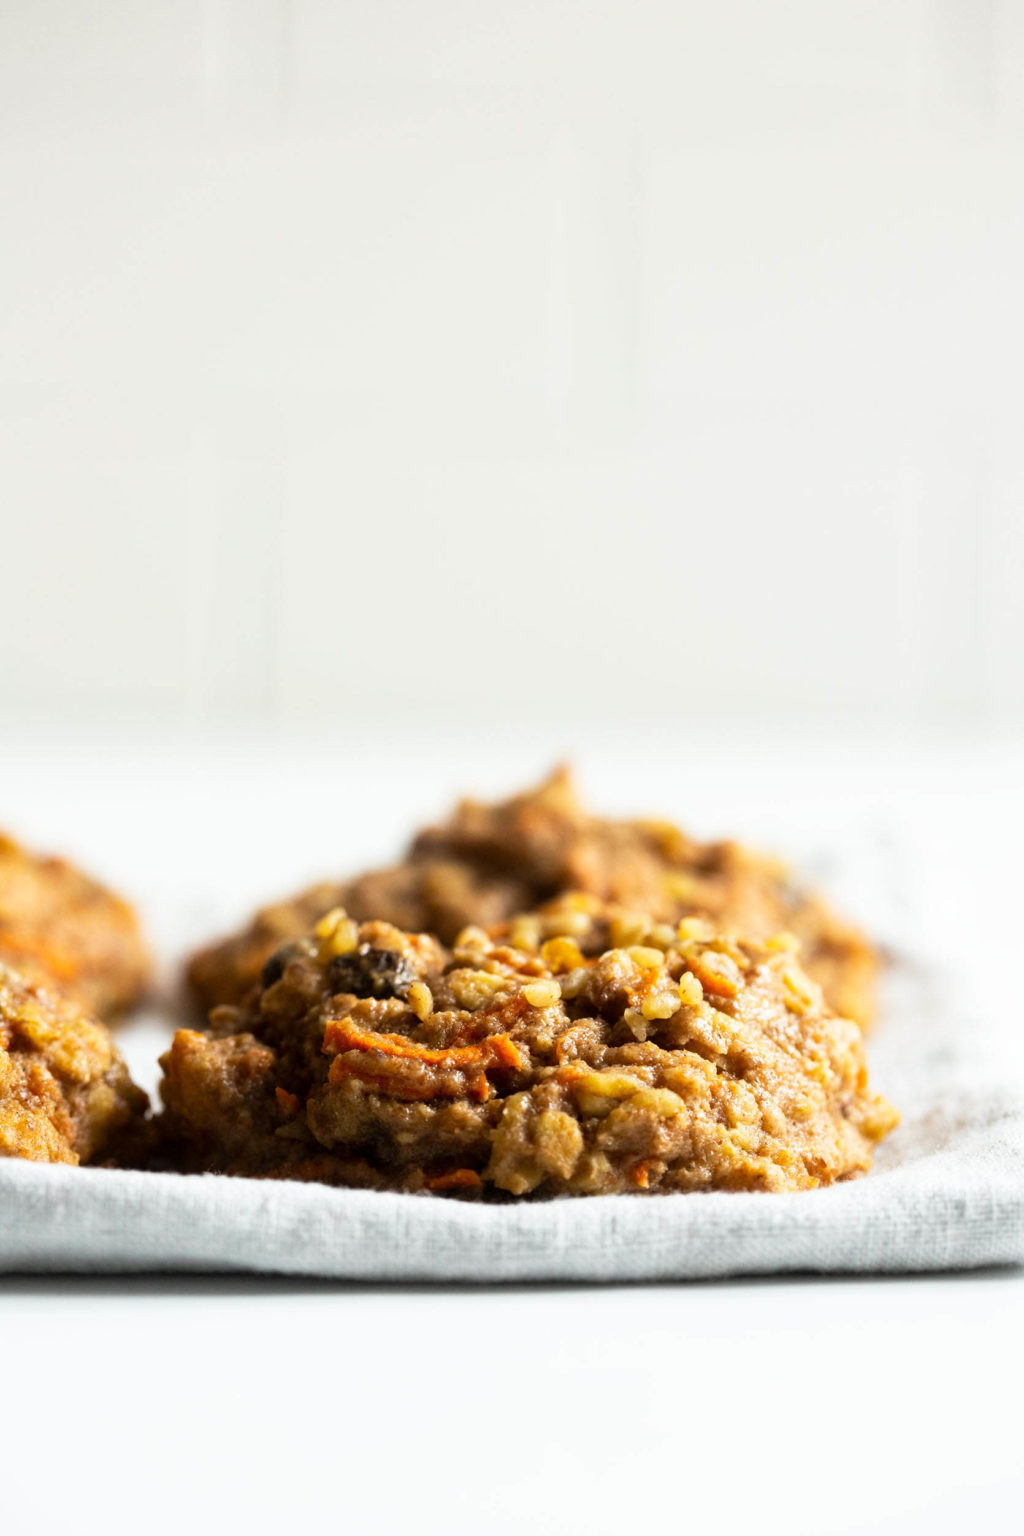 A few chewy, oatmeal breakfast cookies are placed on a pale linen napkin against a bright backdrop.